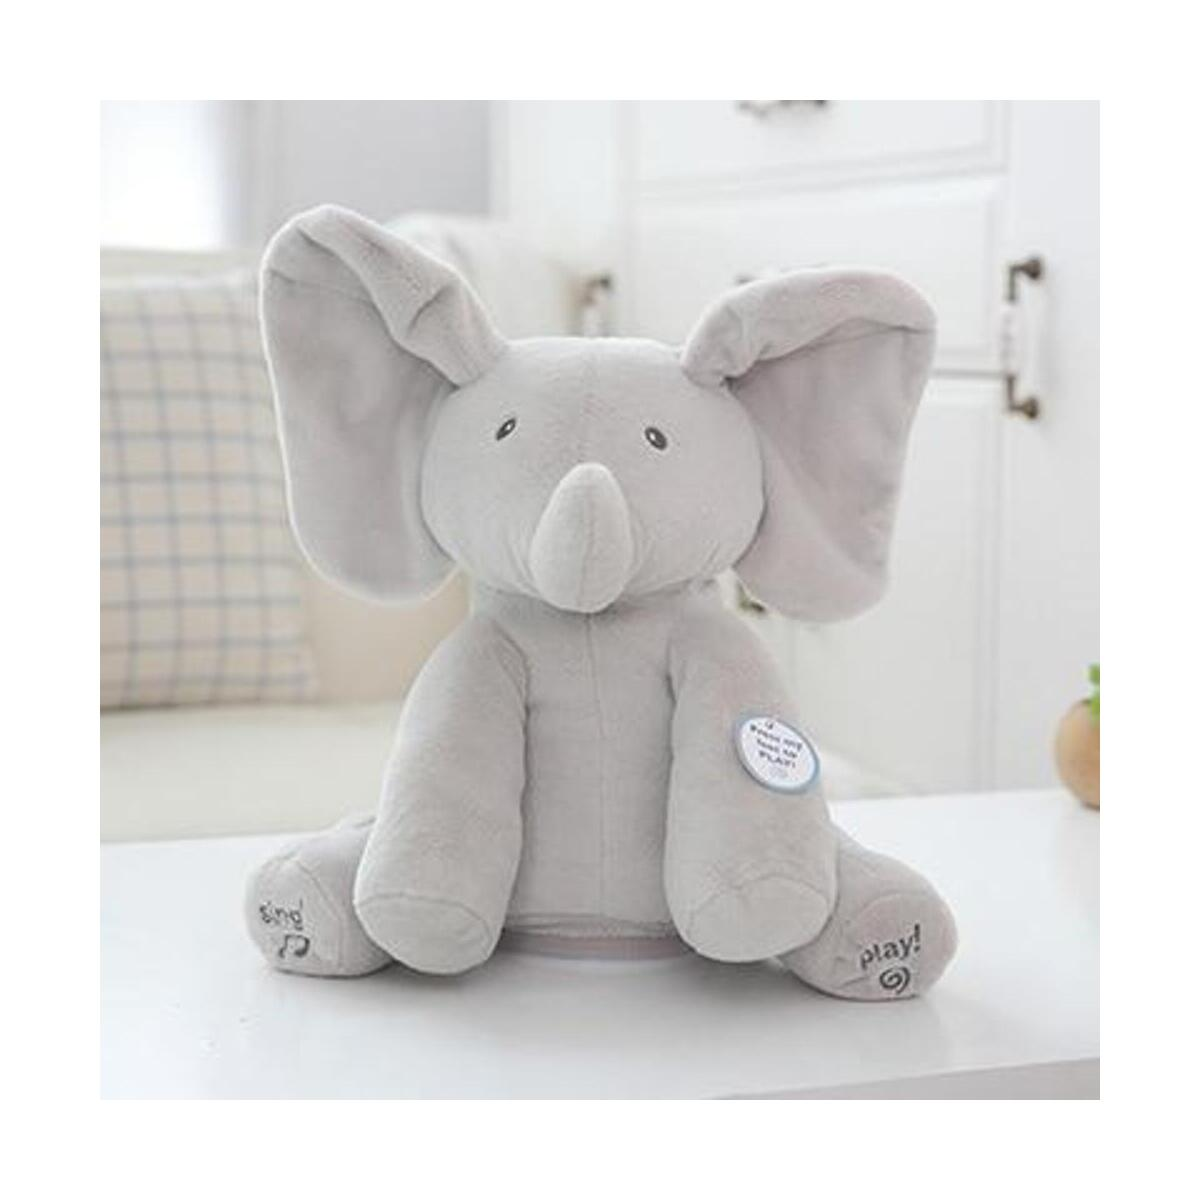 Baby Animated Flappy Peek a Boo Elephant Stuffed Animal Plush